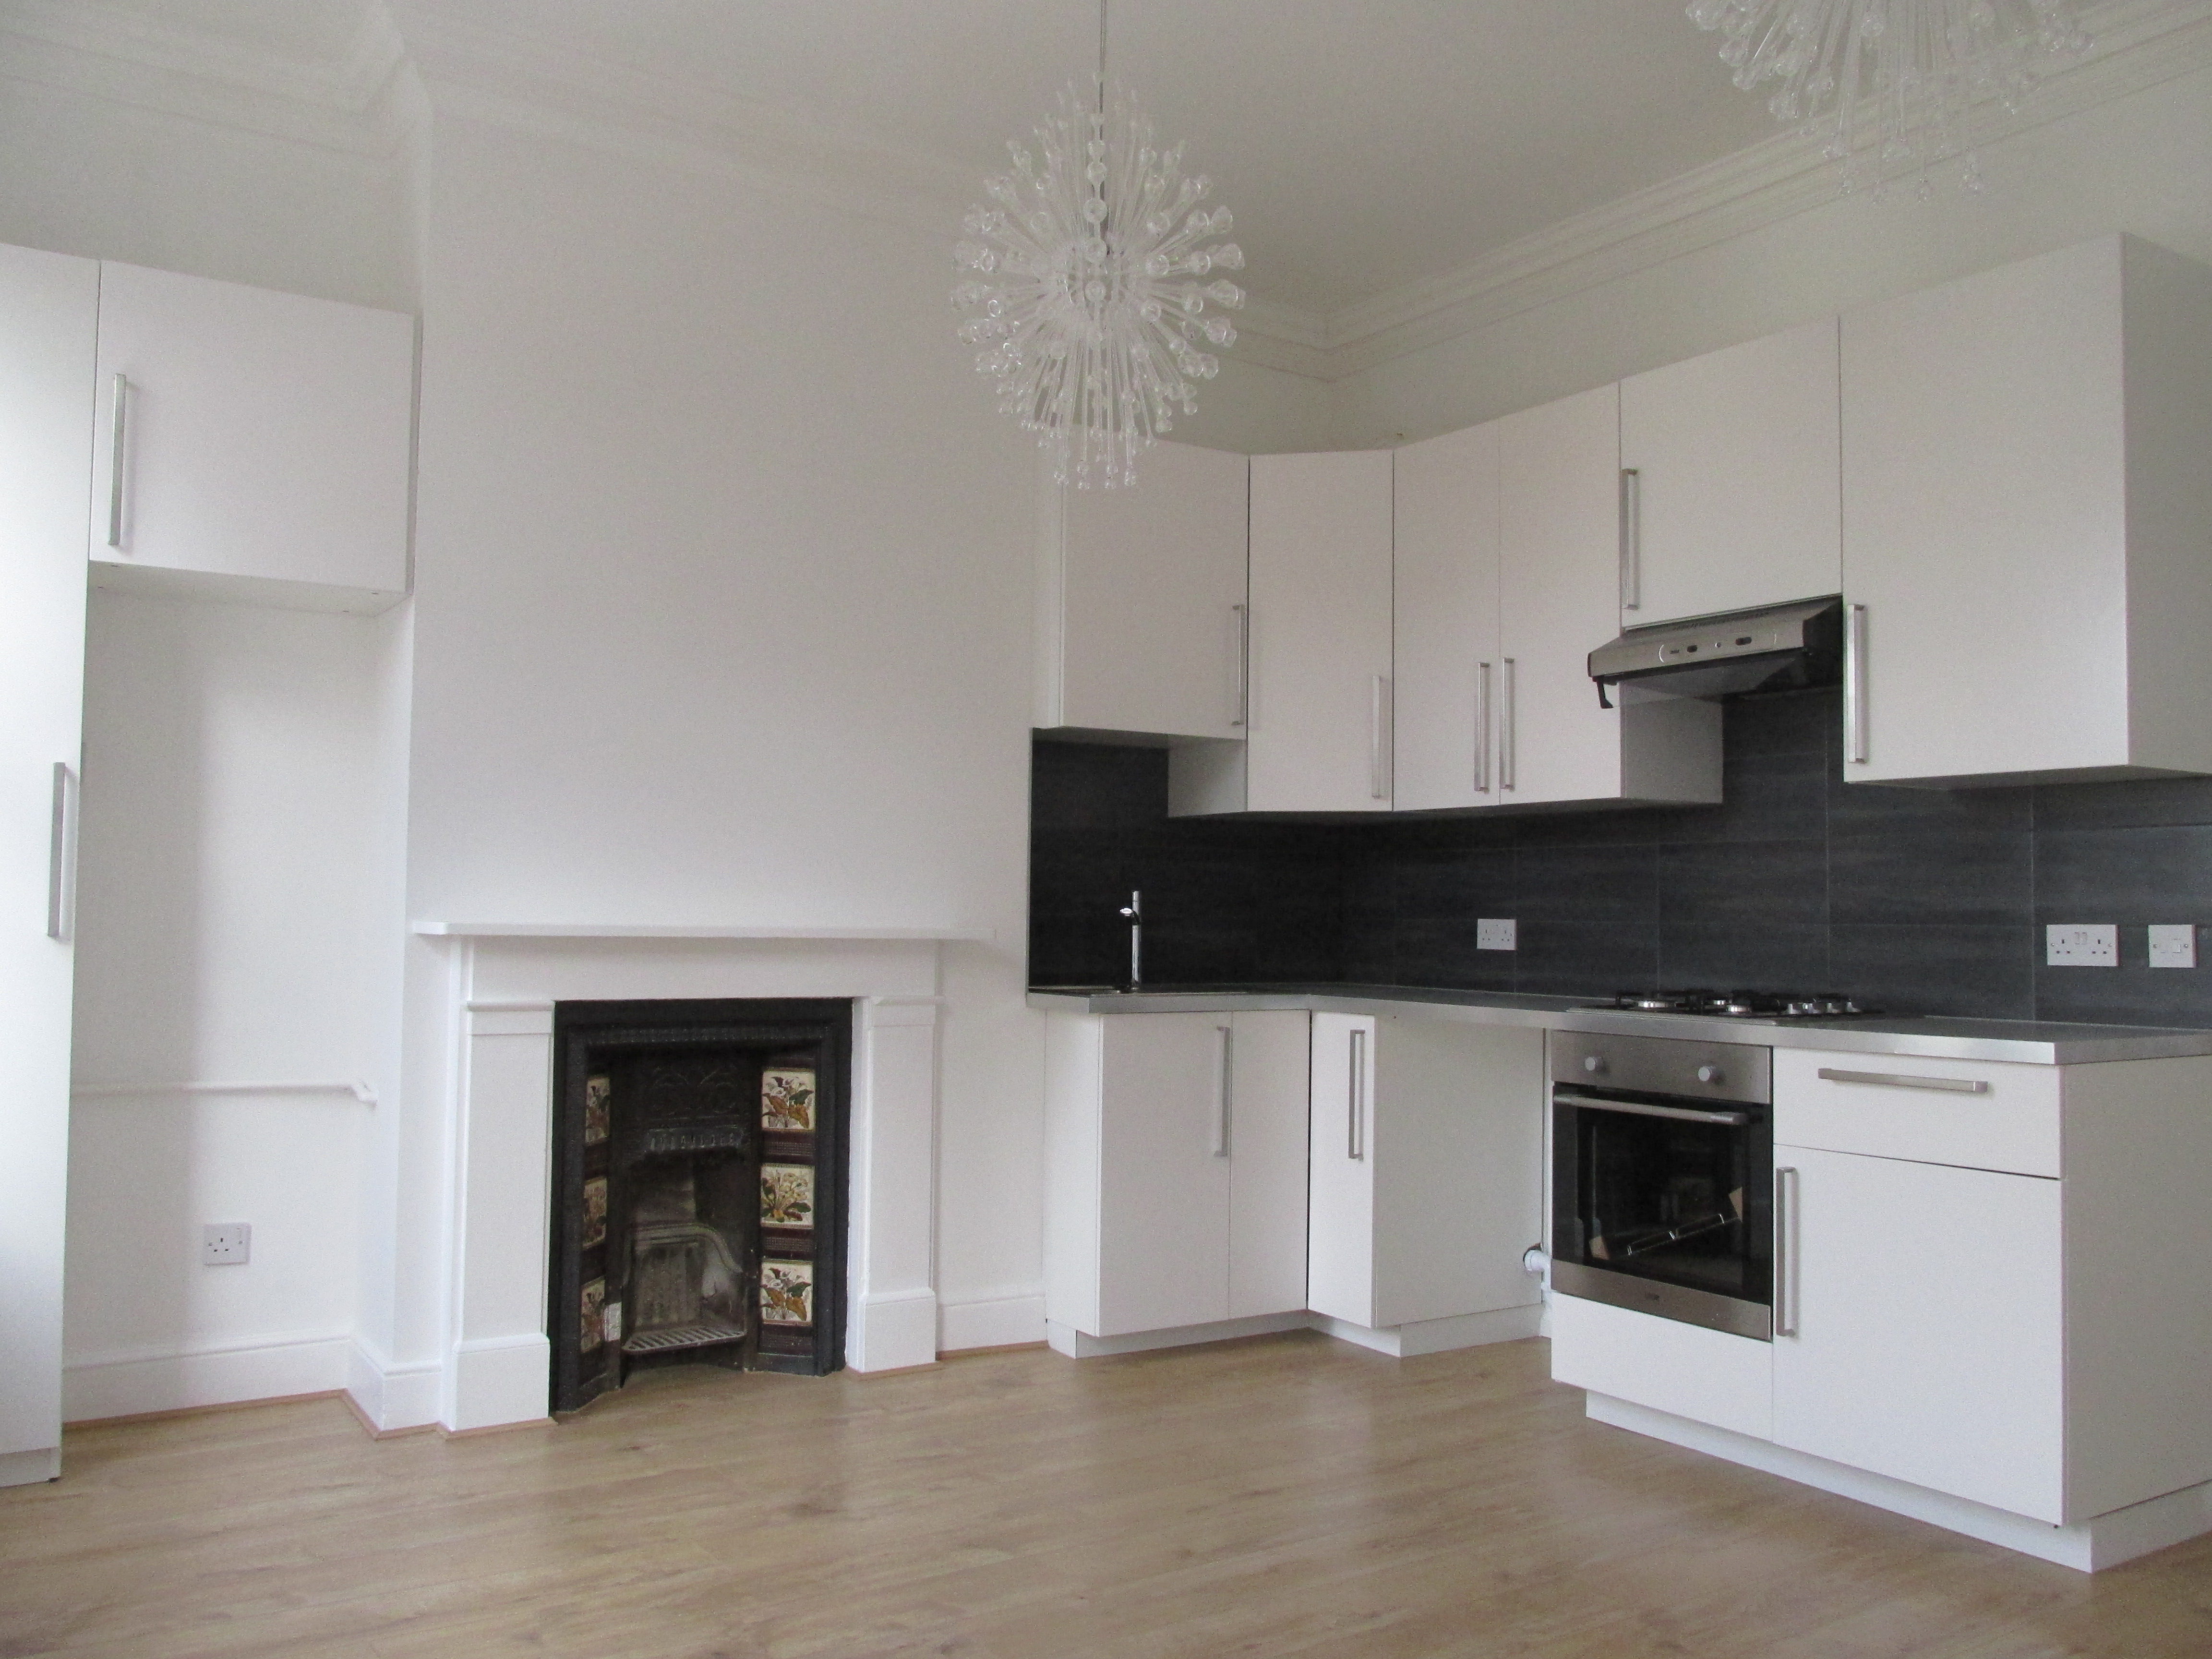 Spacious 2 bedroom flat to let situated in Stoke Newington High Street, London N16.